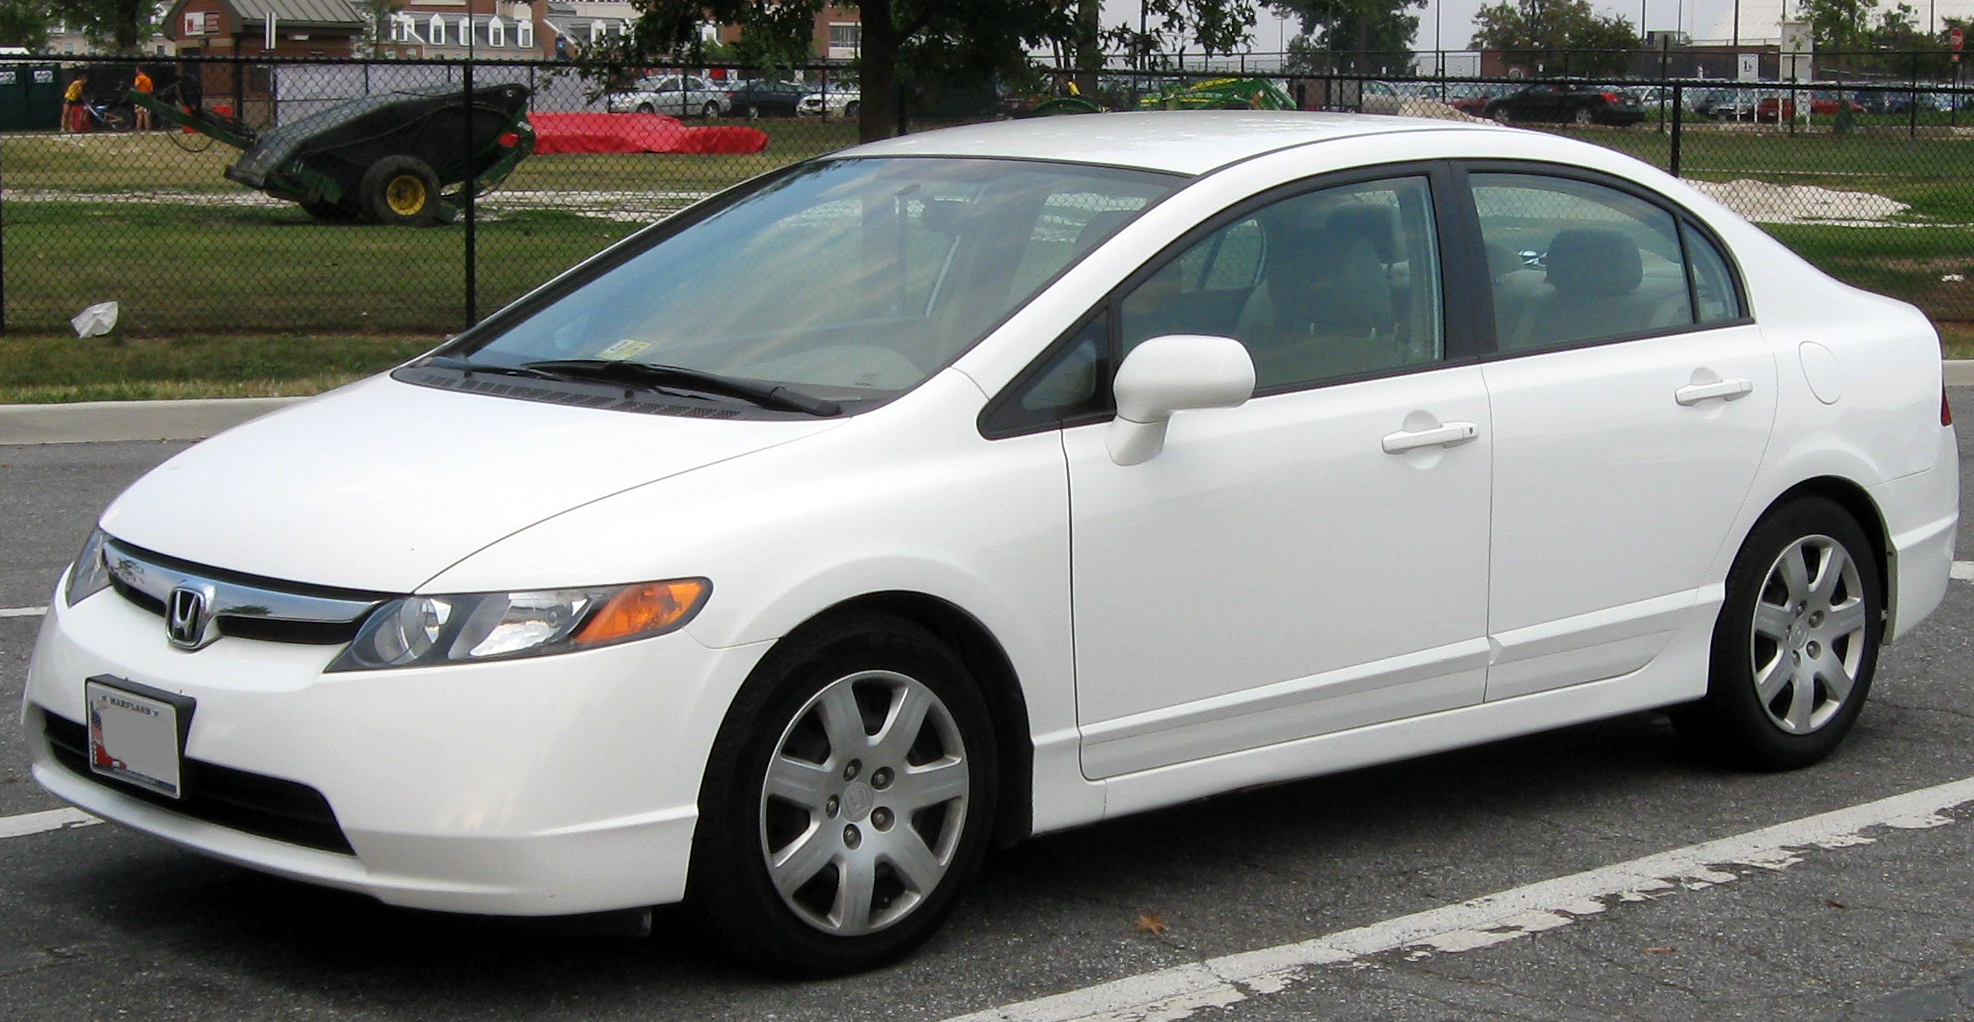 Honda Civic 2006 #3